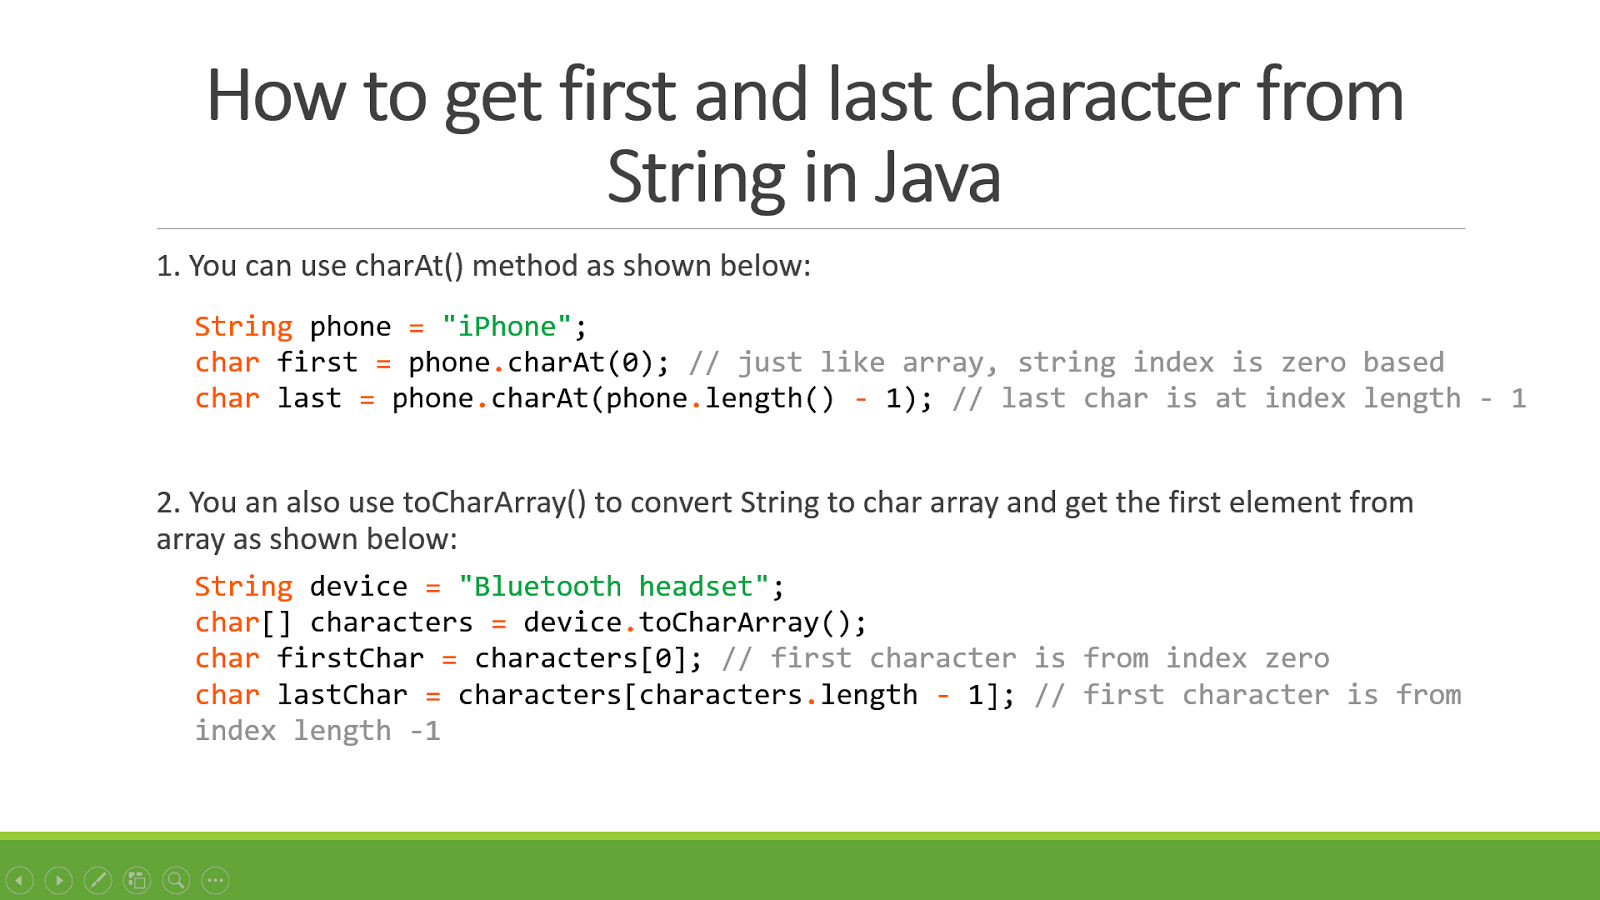 How to get first and last character of String in Java - Example